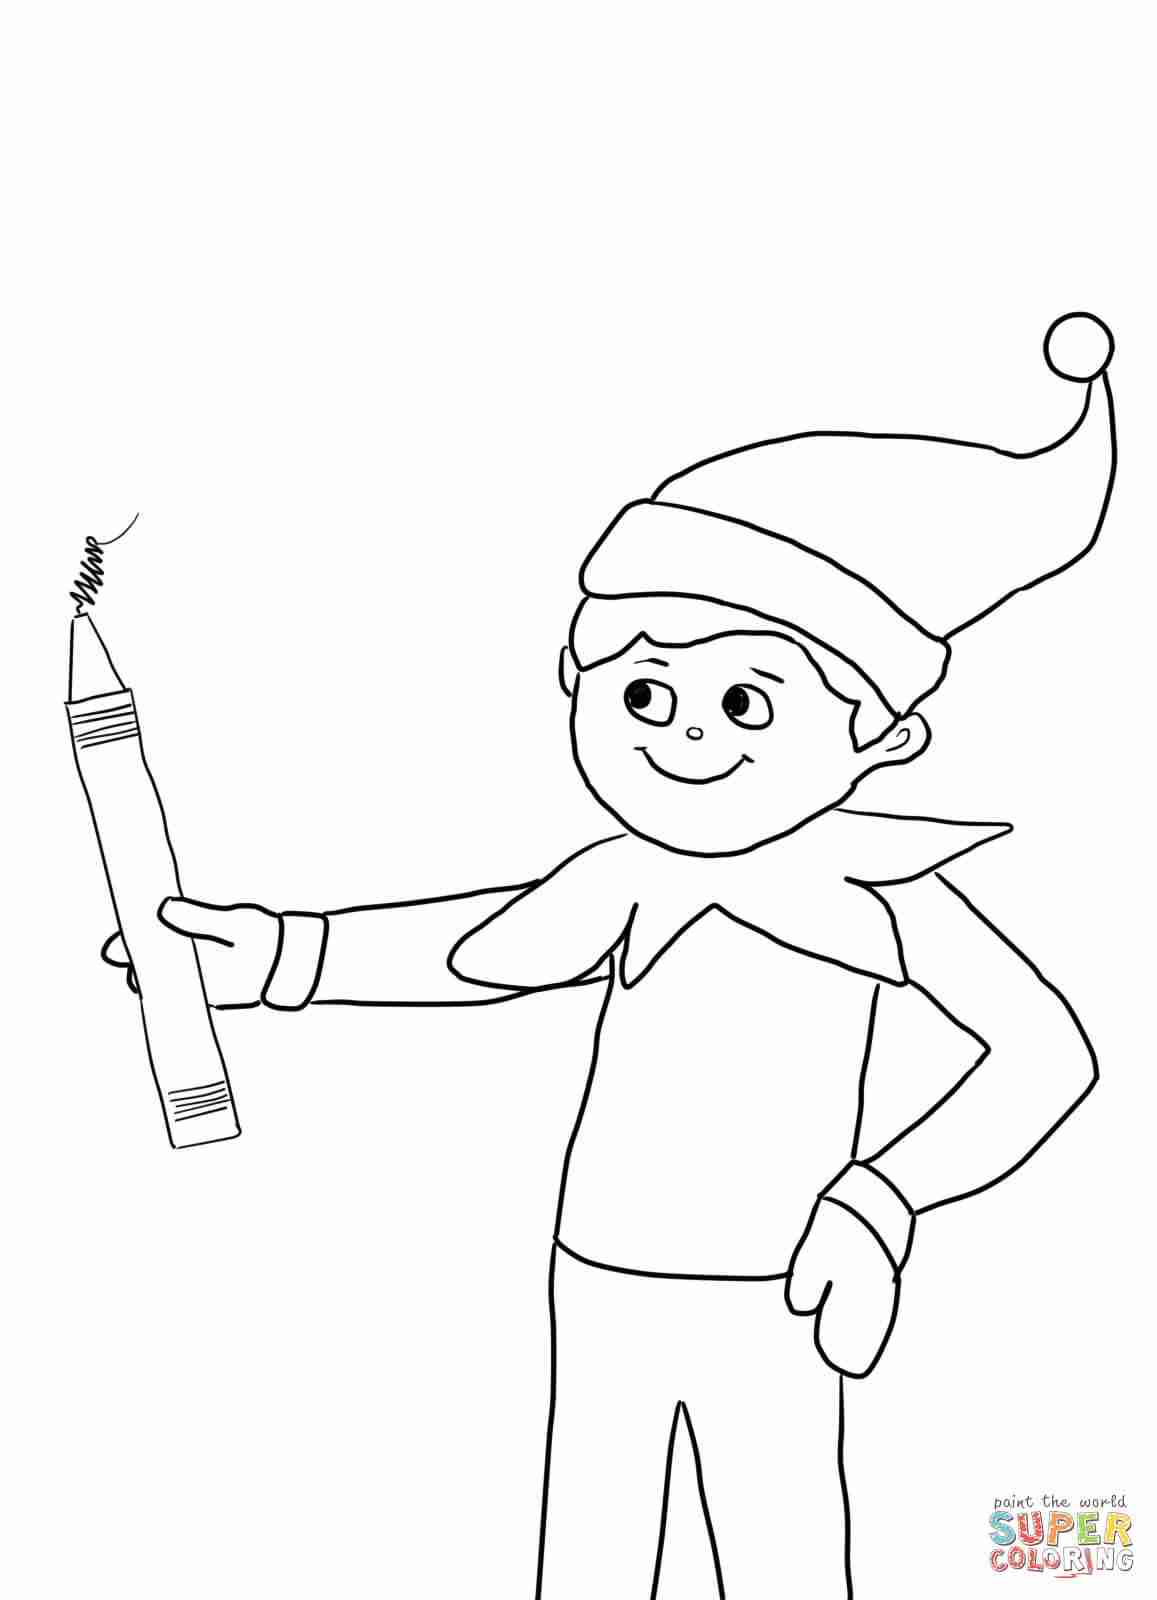 1157x1600 Elf On The Shelf With Pencil Coloring Page Free Printable